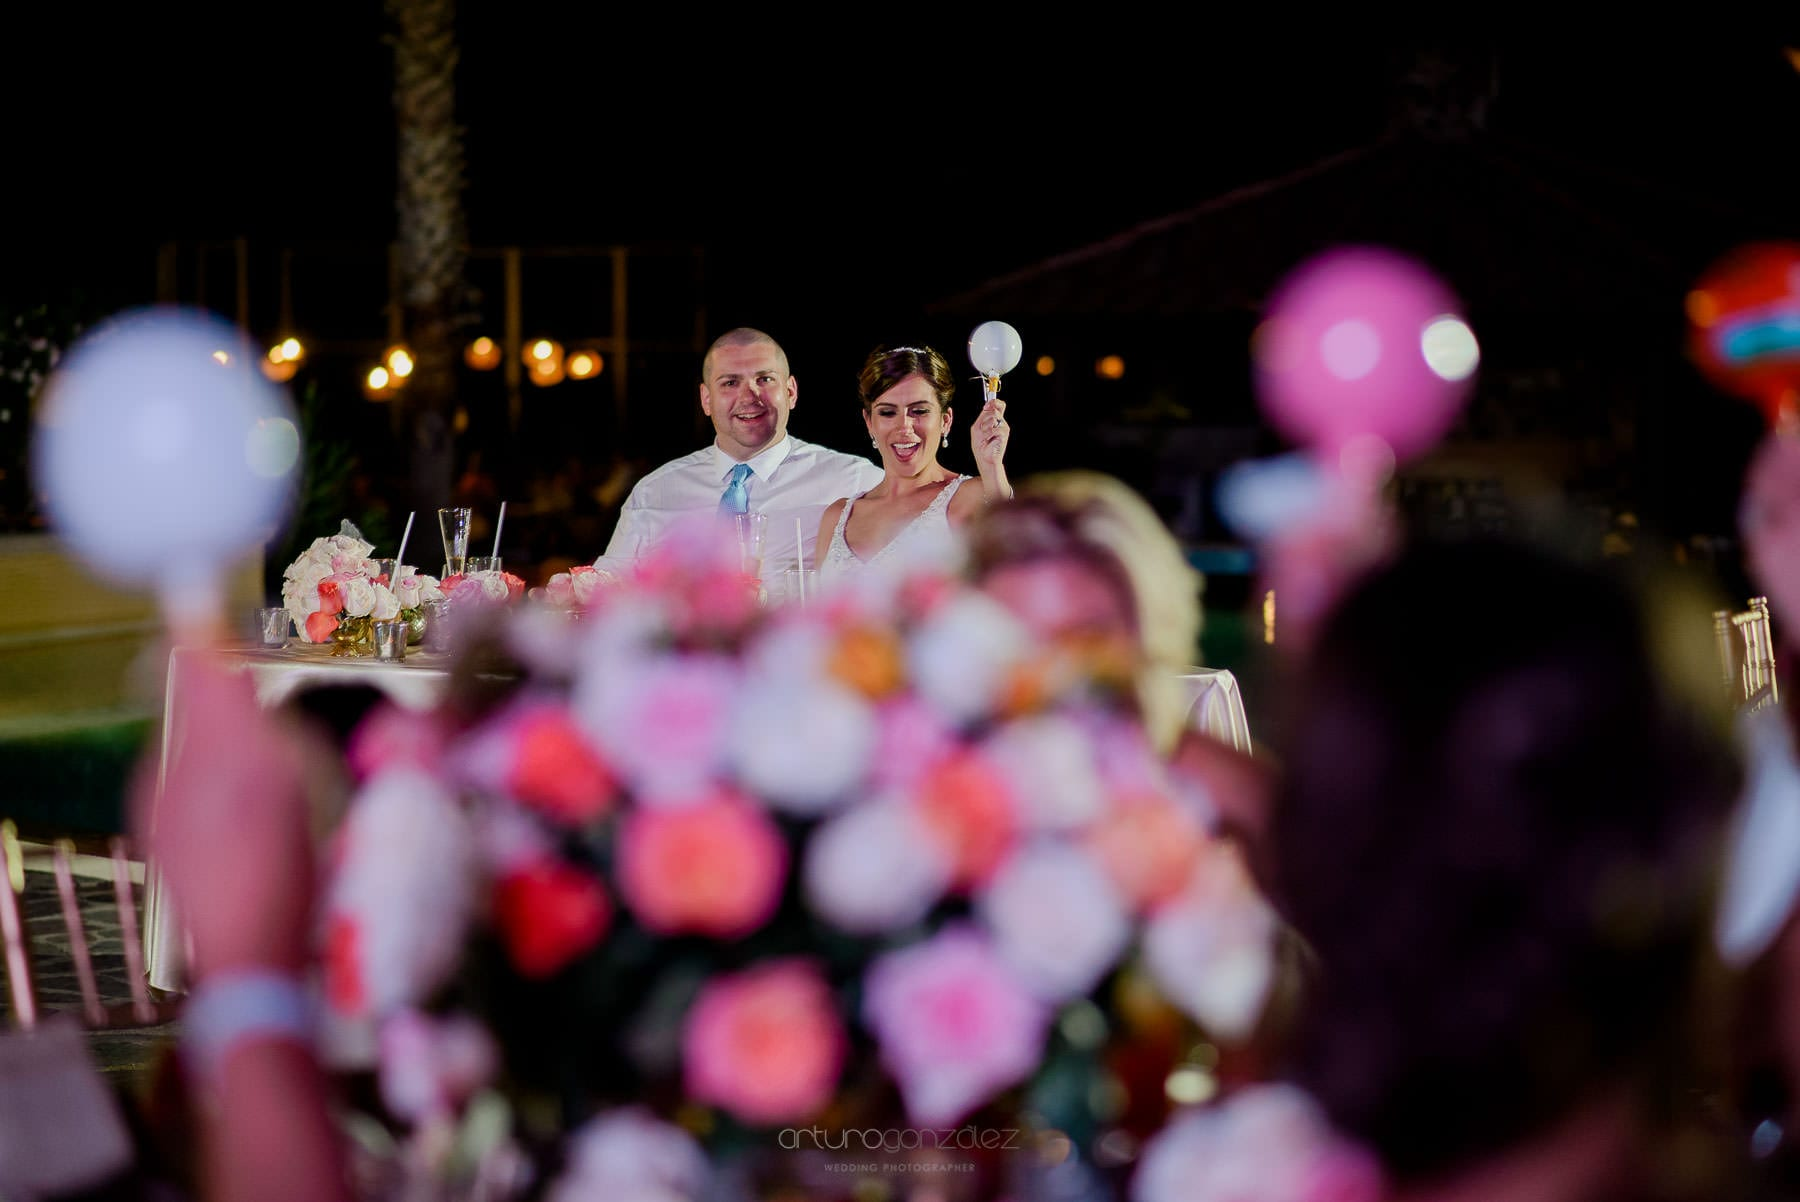 wedding-photos-pueblo-bonito-sunset-beach-4635